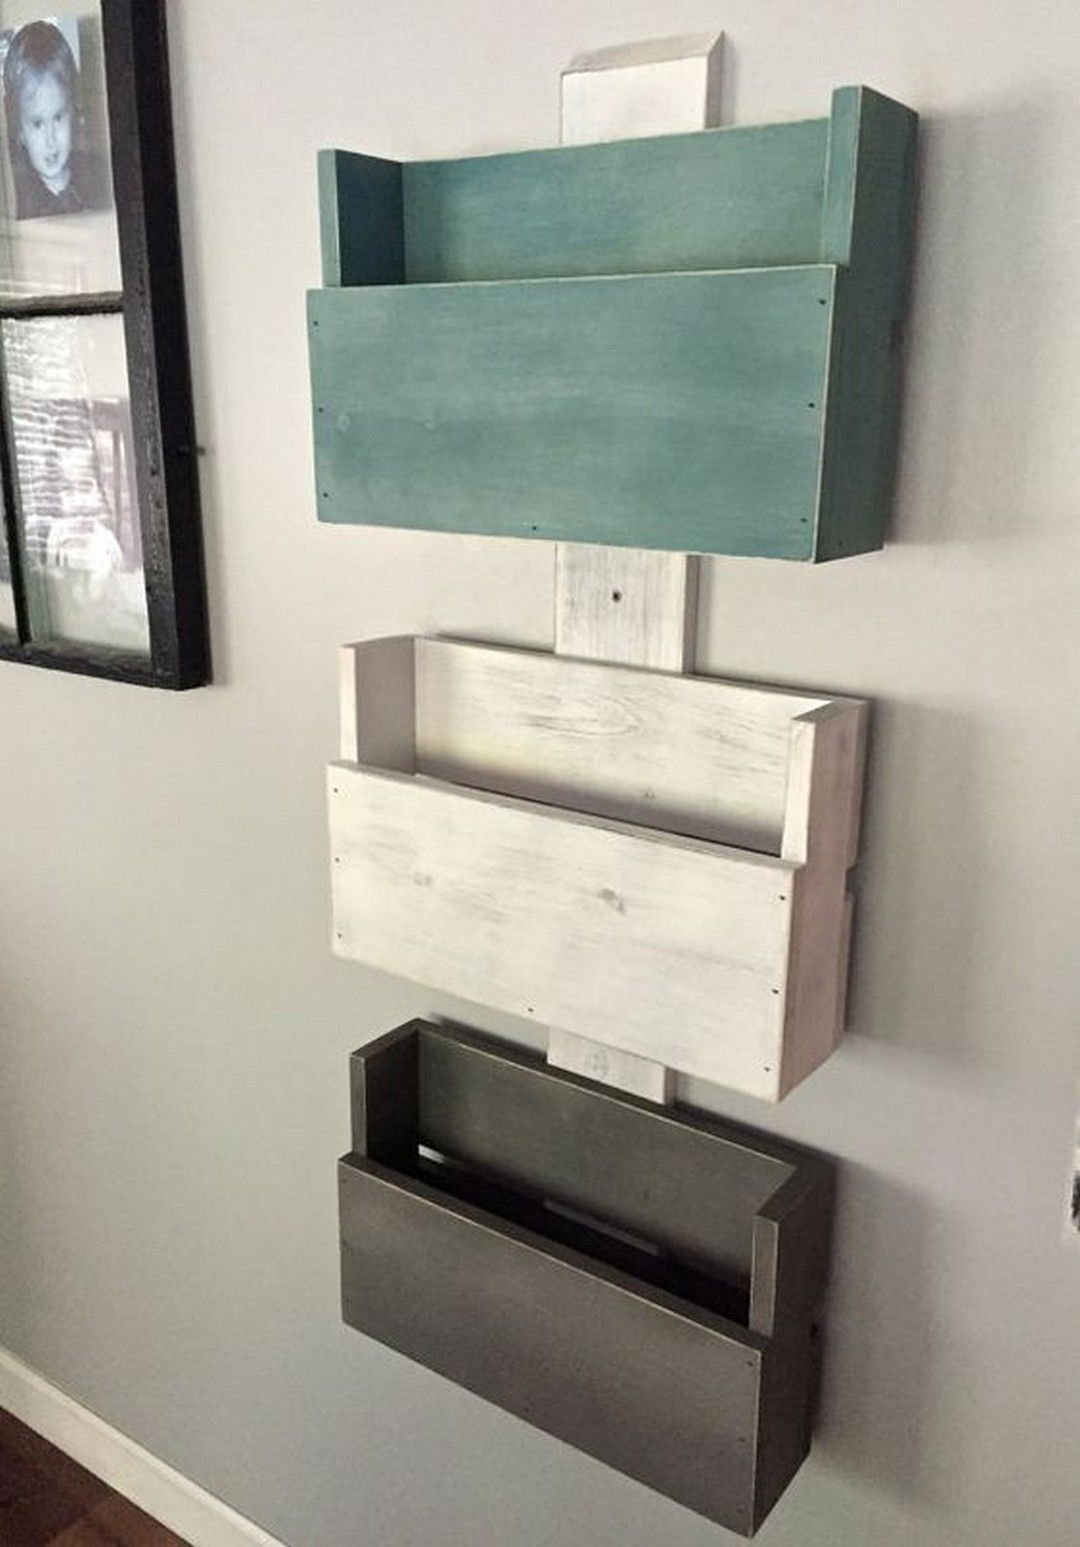 Diy Pallet Projects 99 Easy Diy Pallet Projects Ideas For Your Home Interior Design